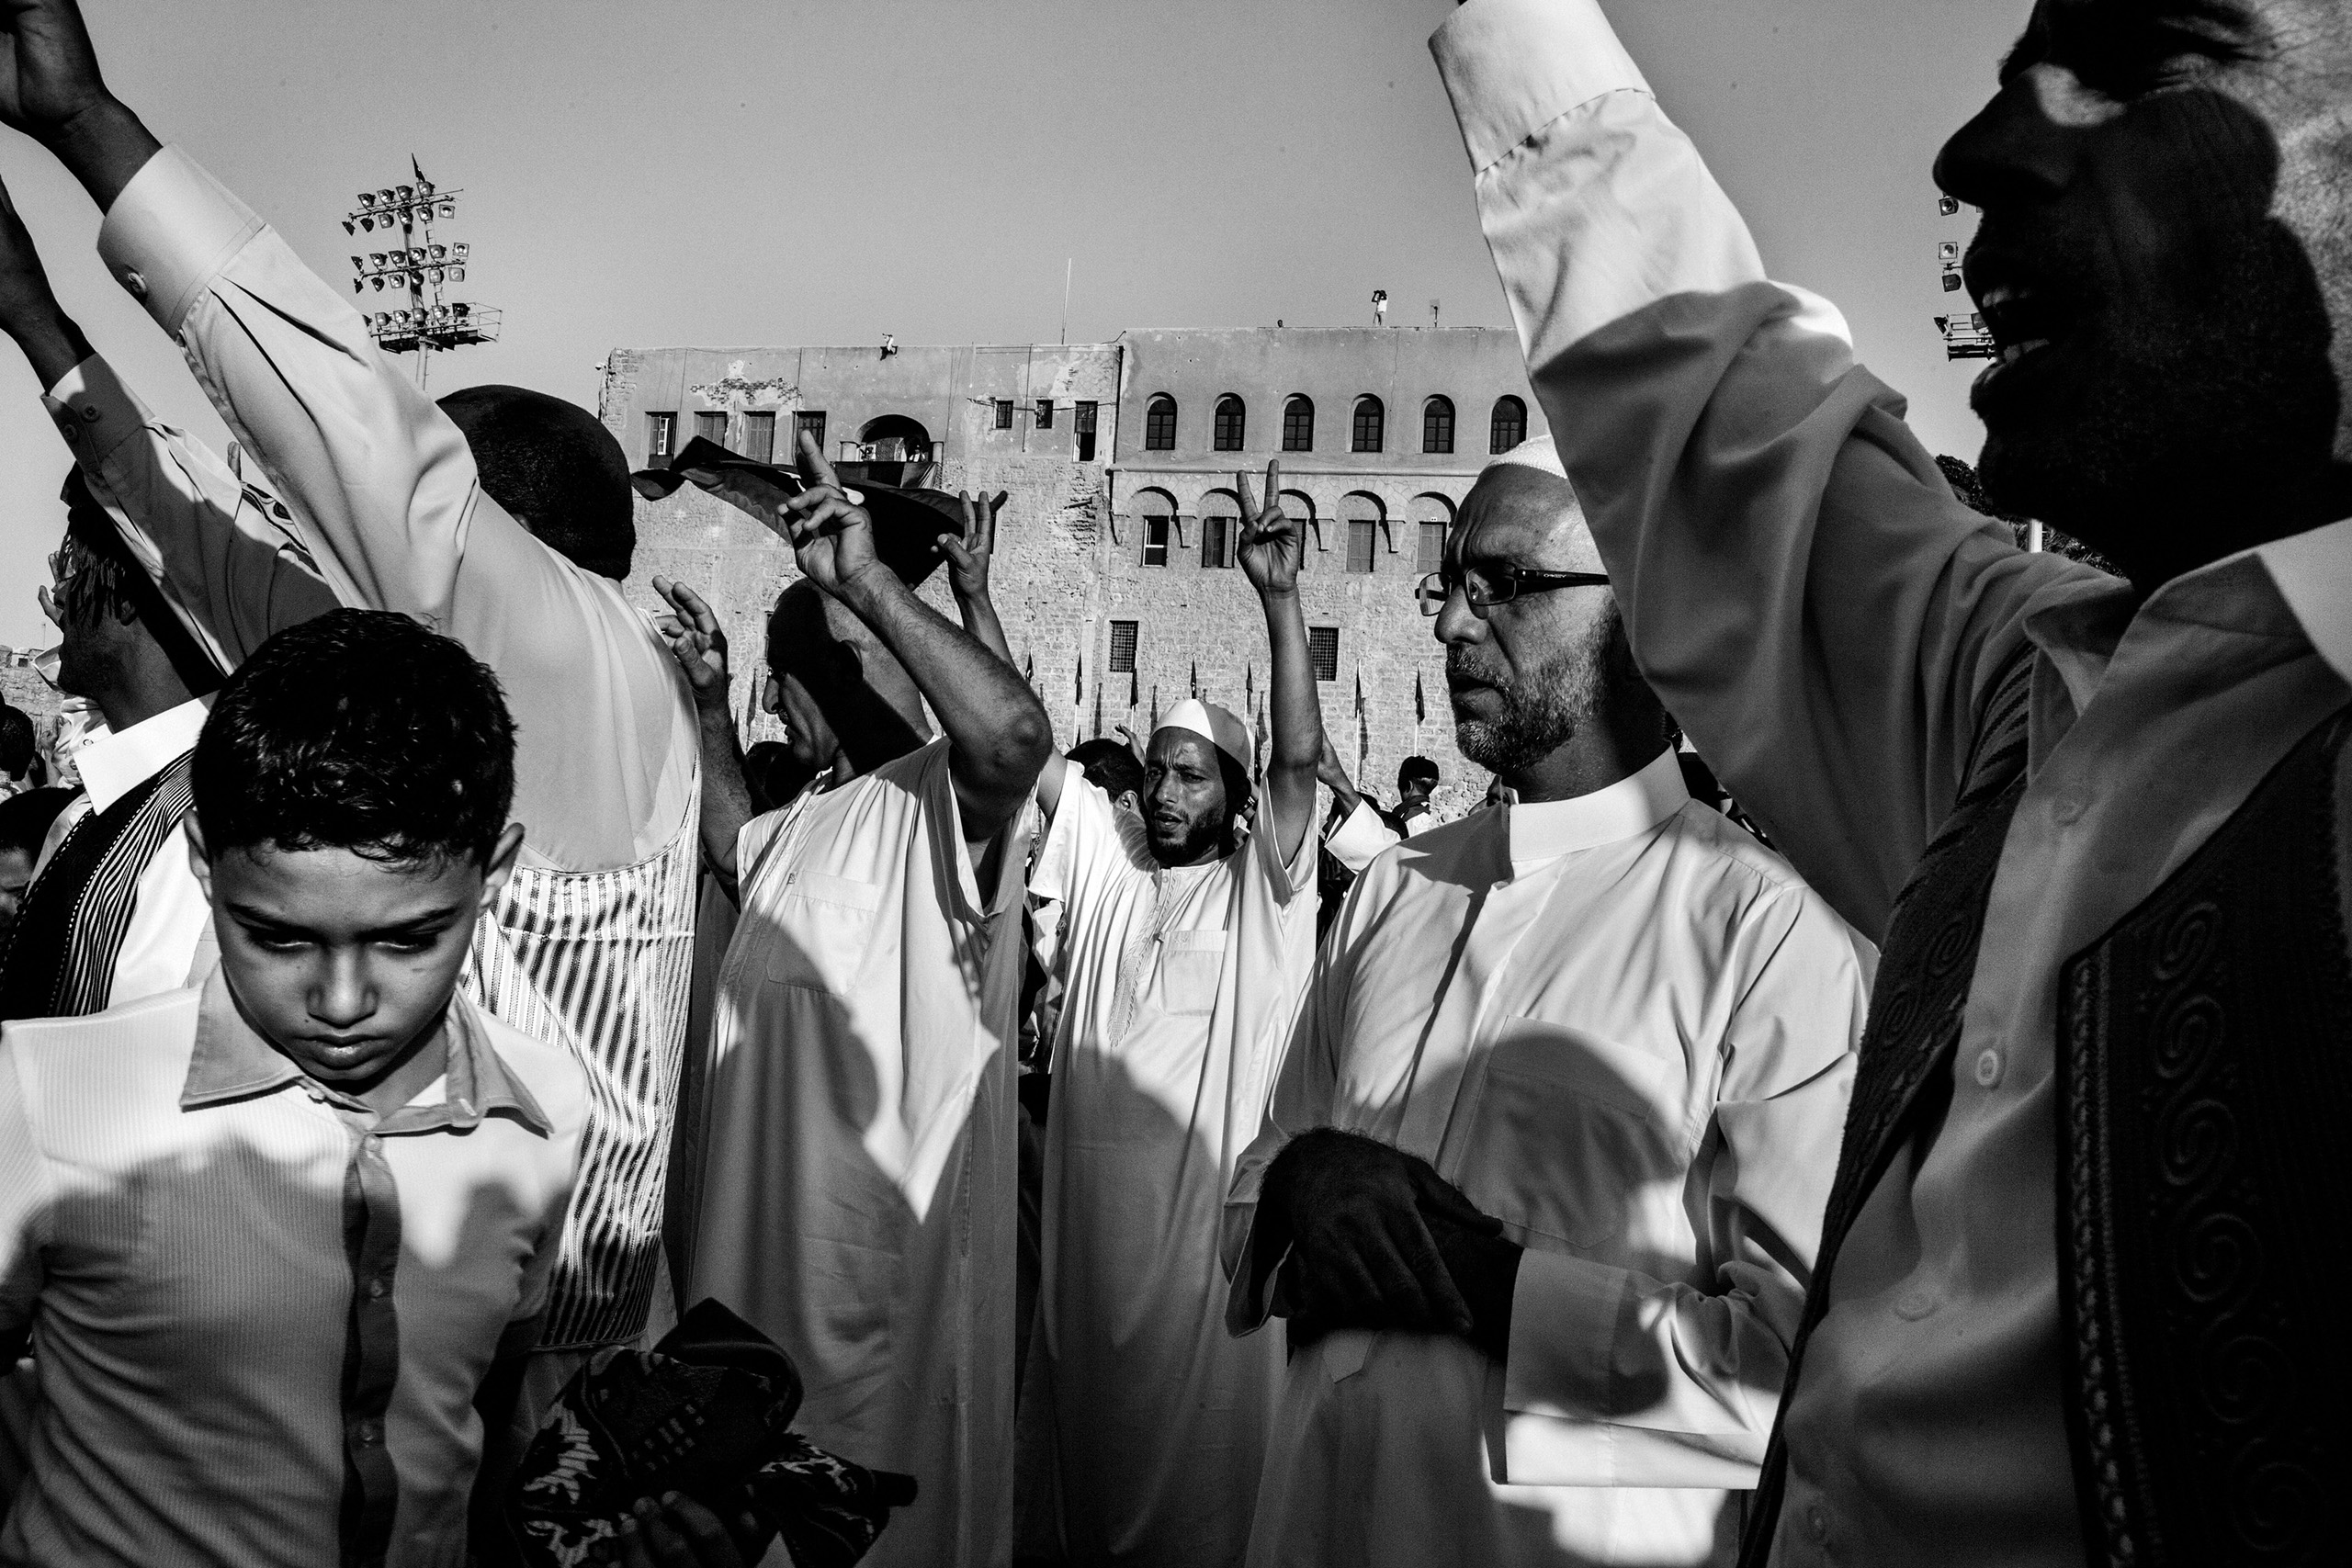 After Friday prayers,  Libyan people celebrate in the Square of the Revolution, formerly Green Square, Tripoli, Libya, Aug. 31, 2011.